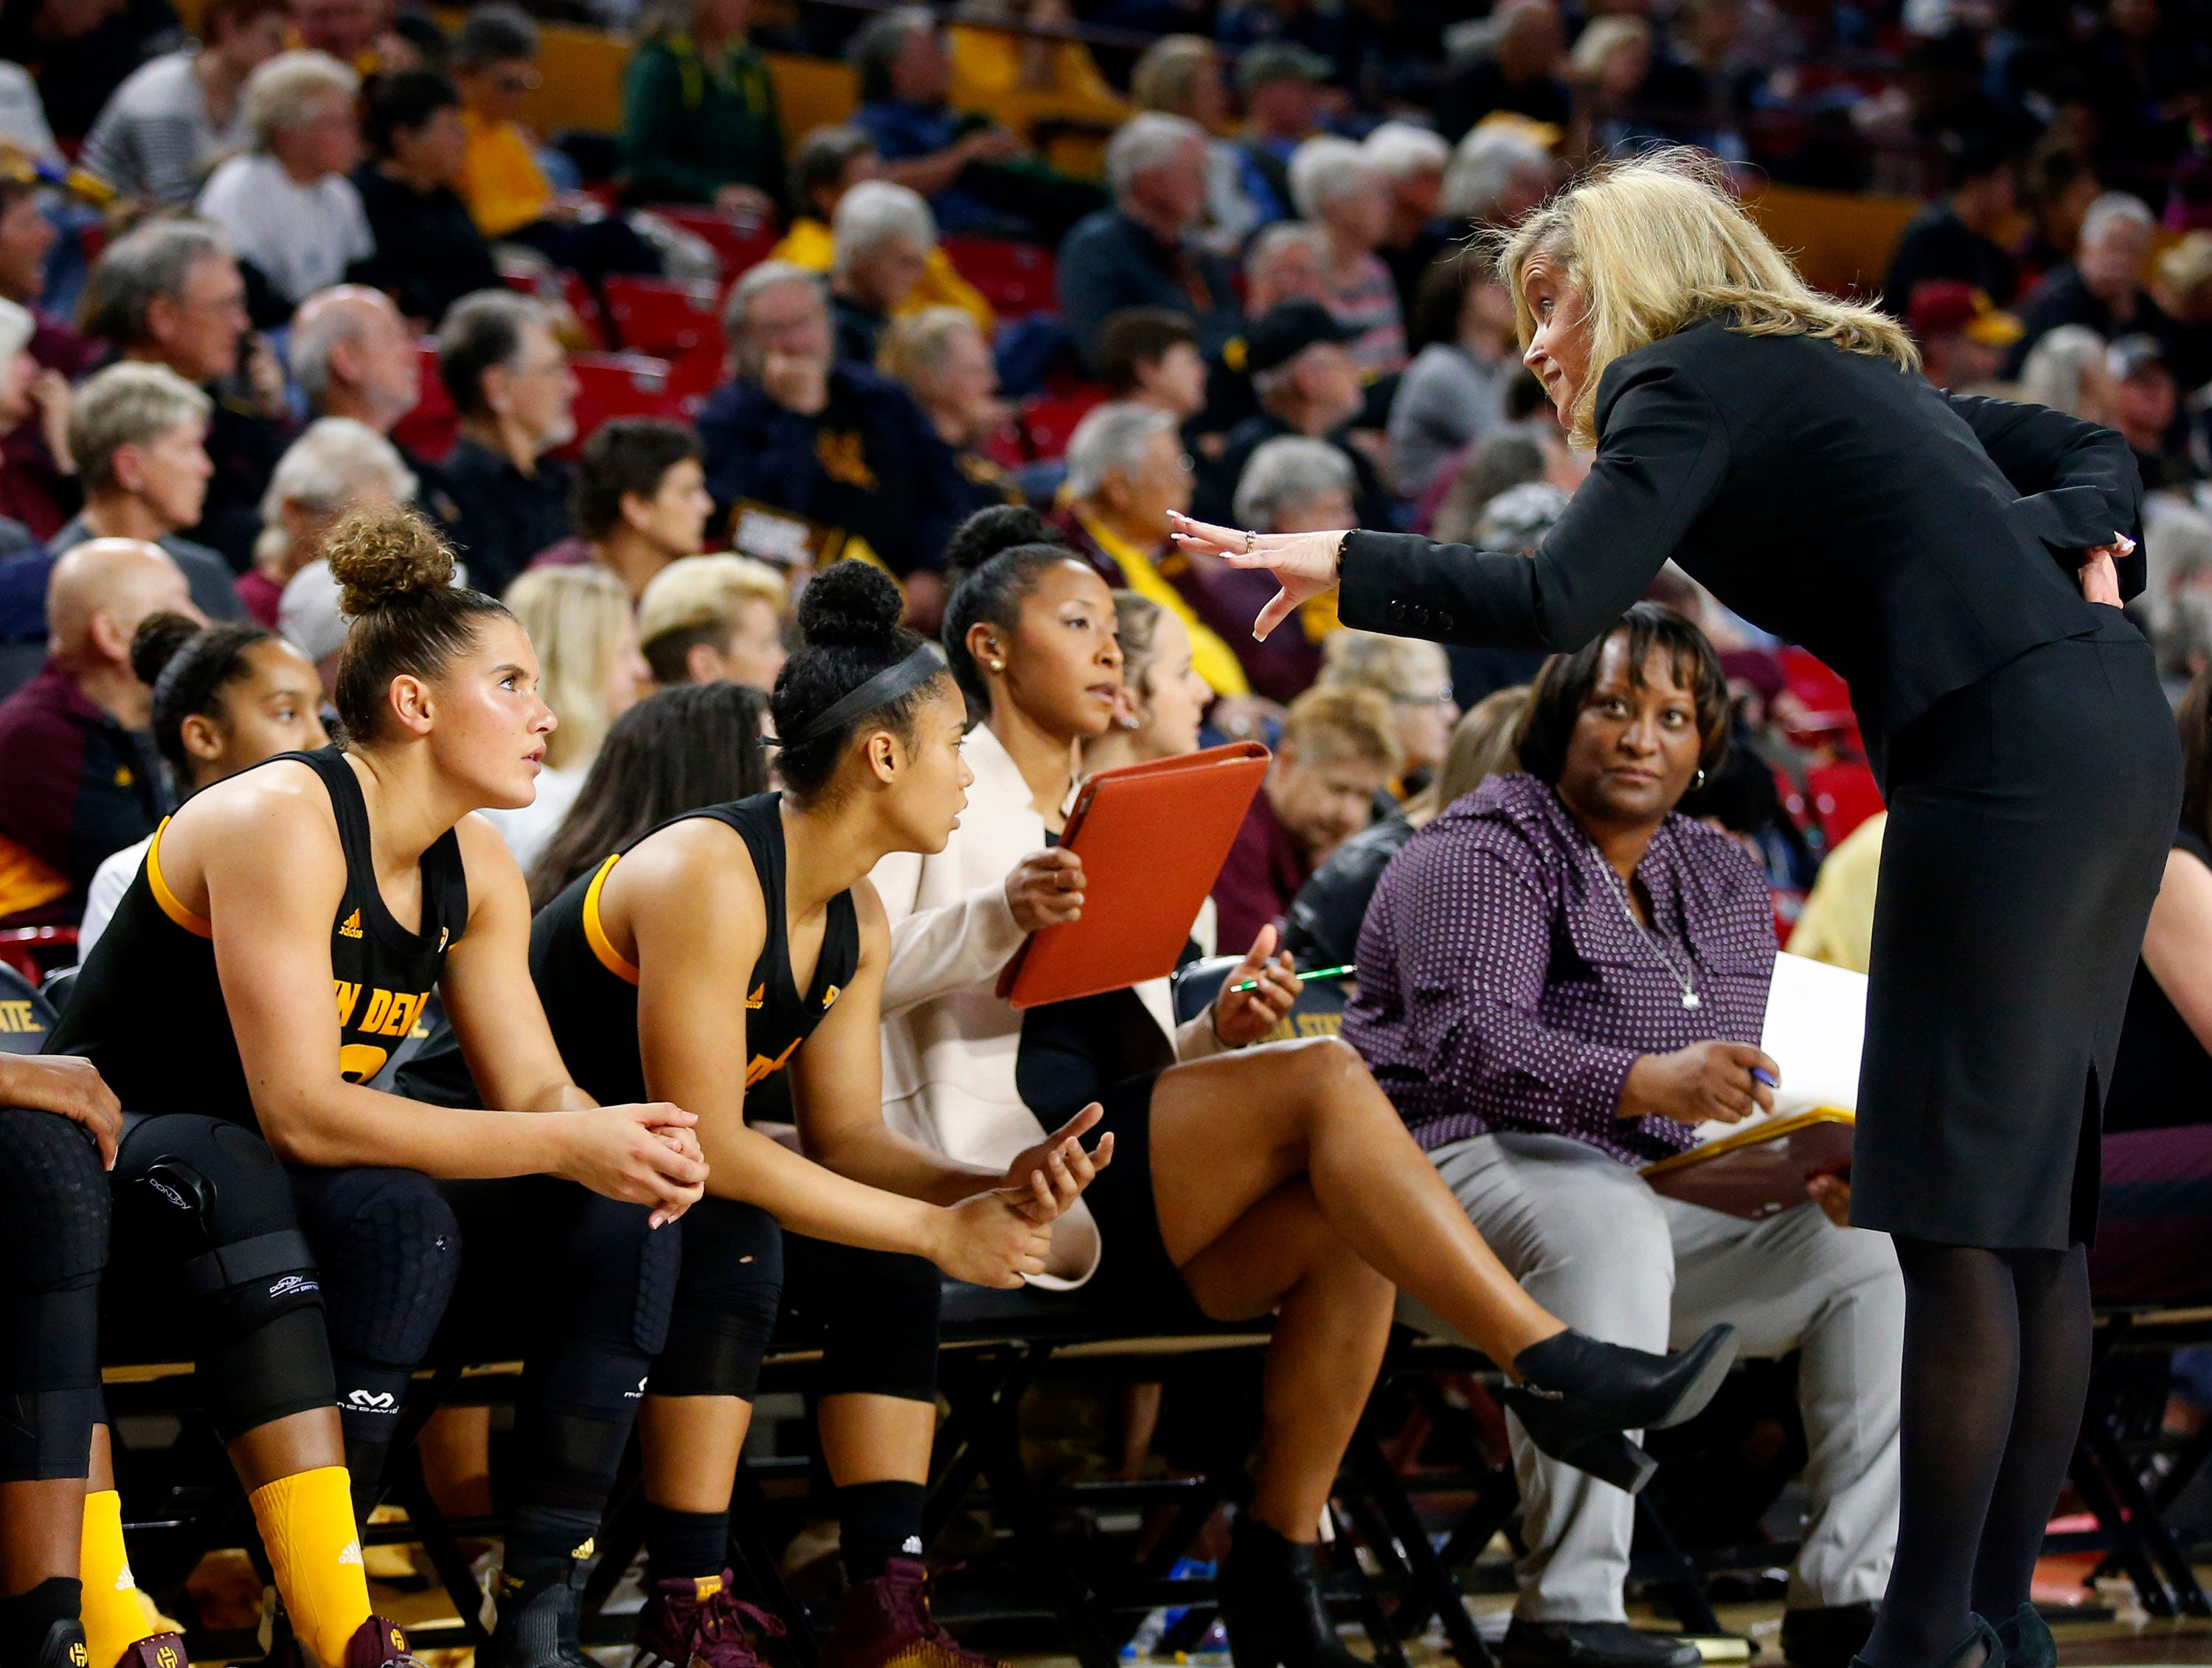 Arizona State University head coach Charli Turner Thorne talks to her team during a women's basketball game against Stanford University at Well Fargo Arena in Tempe on January 11.